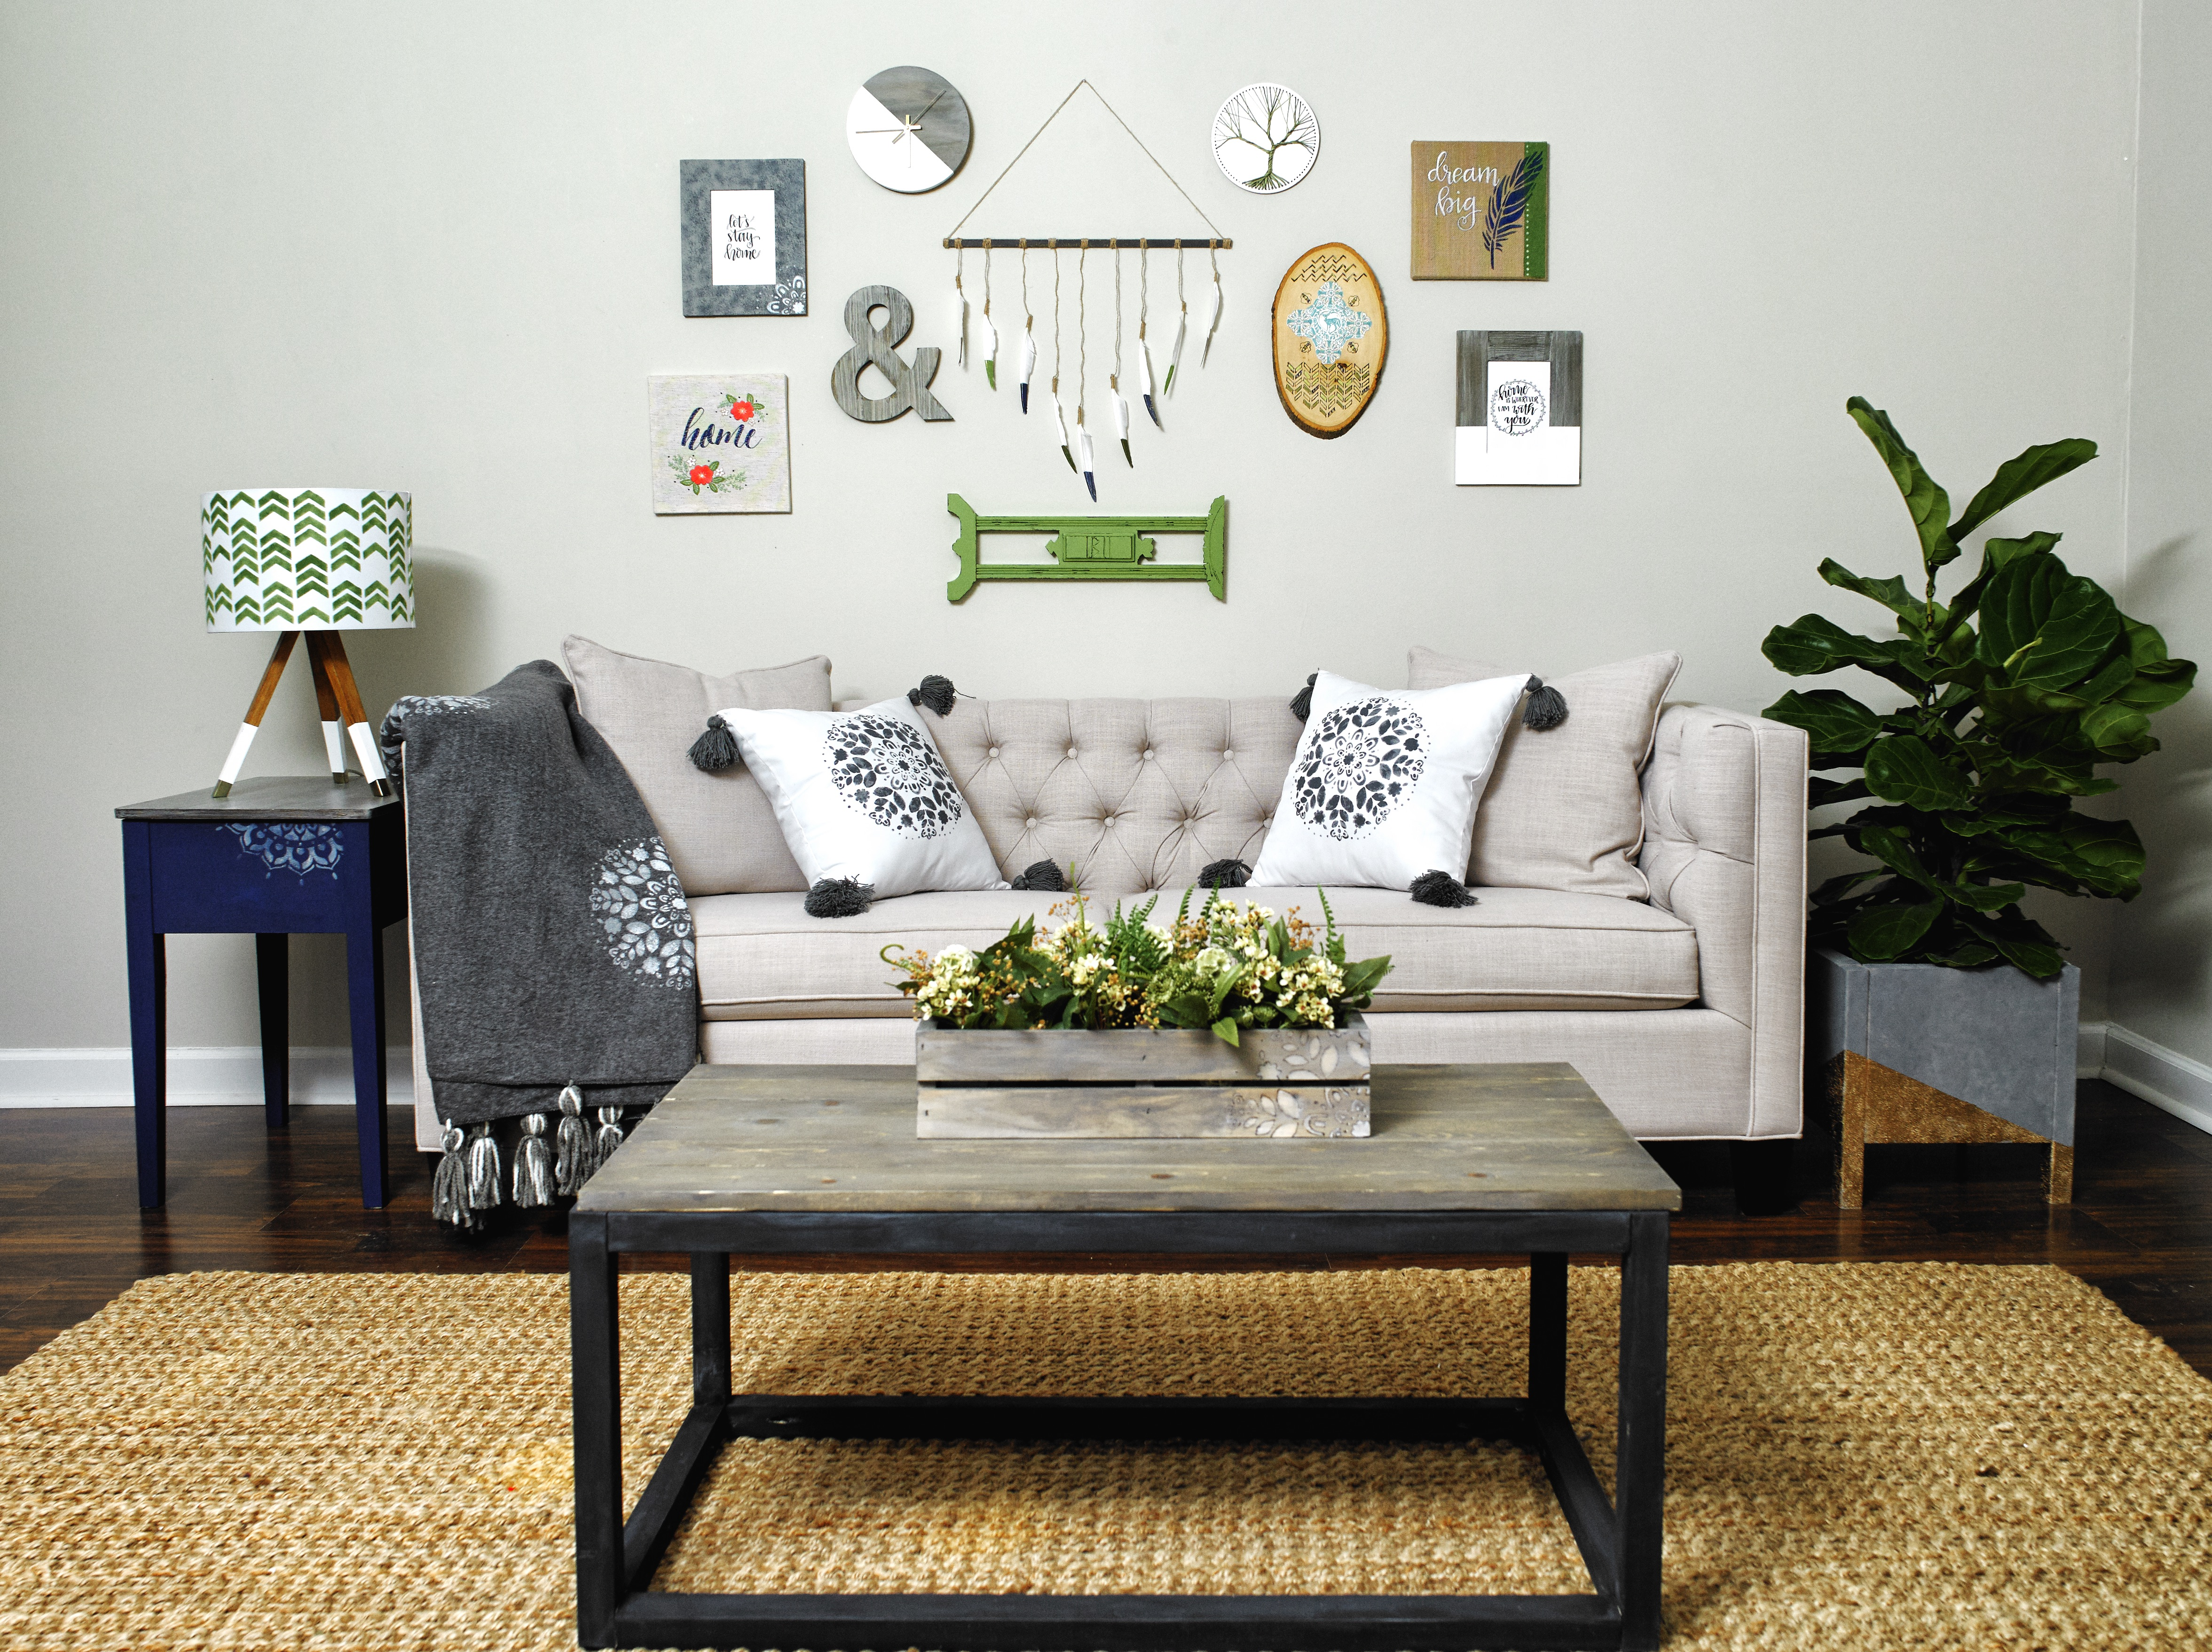 WIN this entire beautiful gallery wall + $500 of crafting supplies from Plaid! #plaidcreators